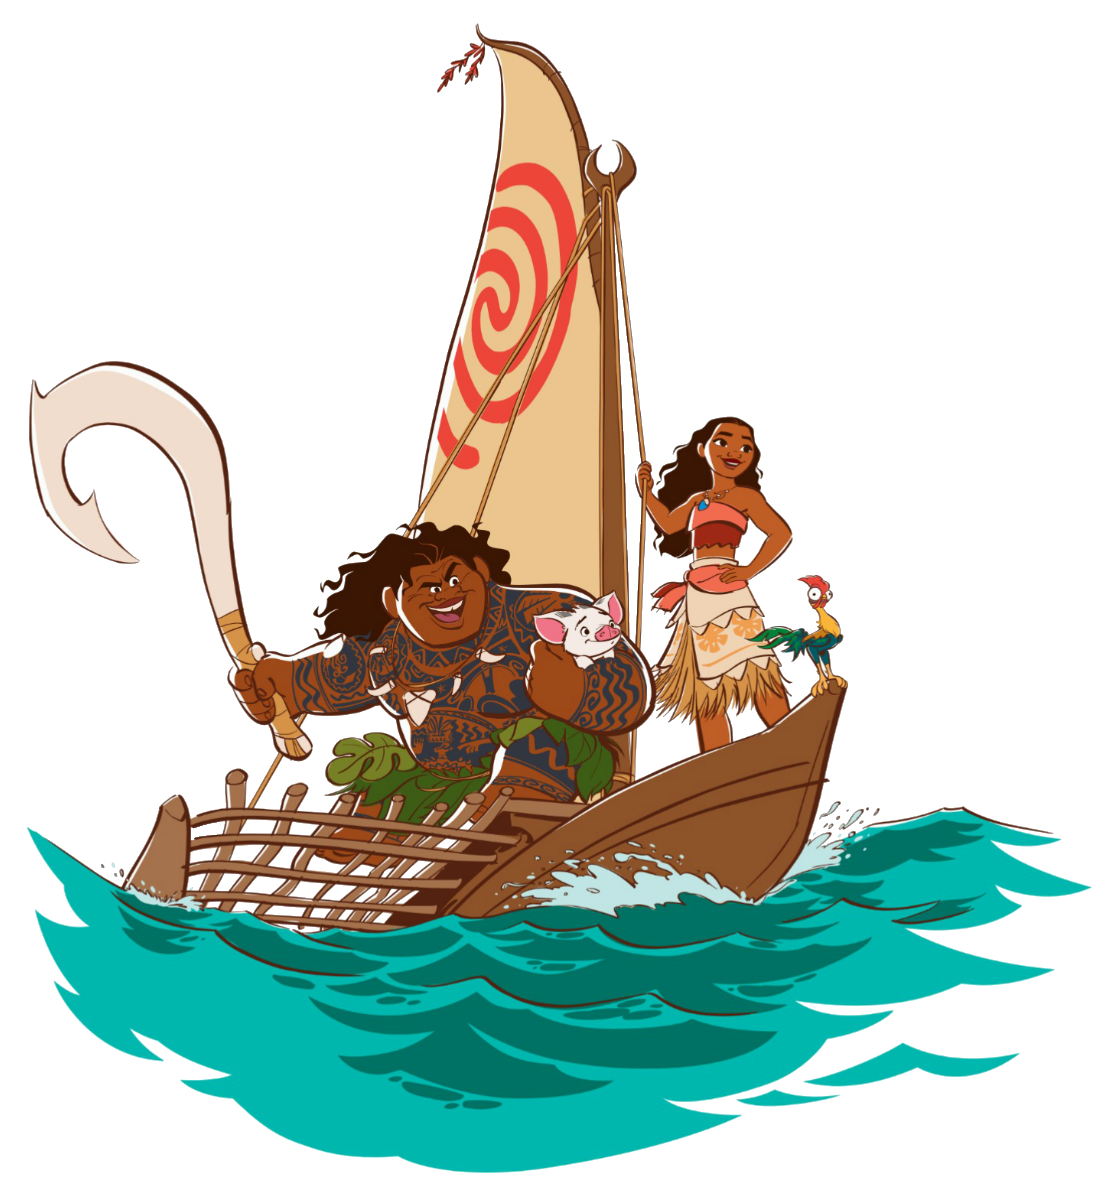 clipart library stock Moana clipart symbol. Sailboat free on dumielauxepices.